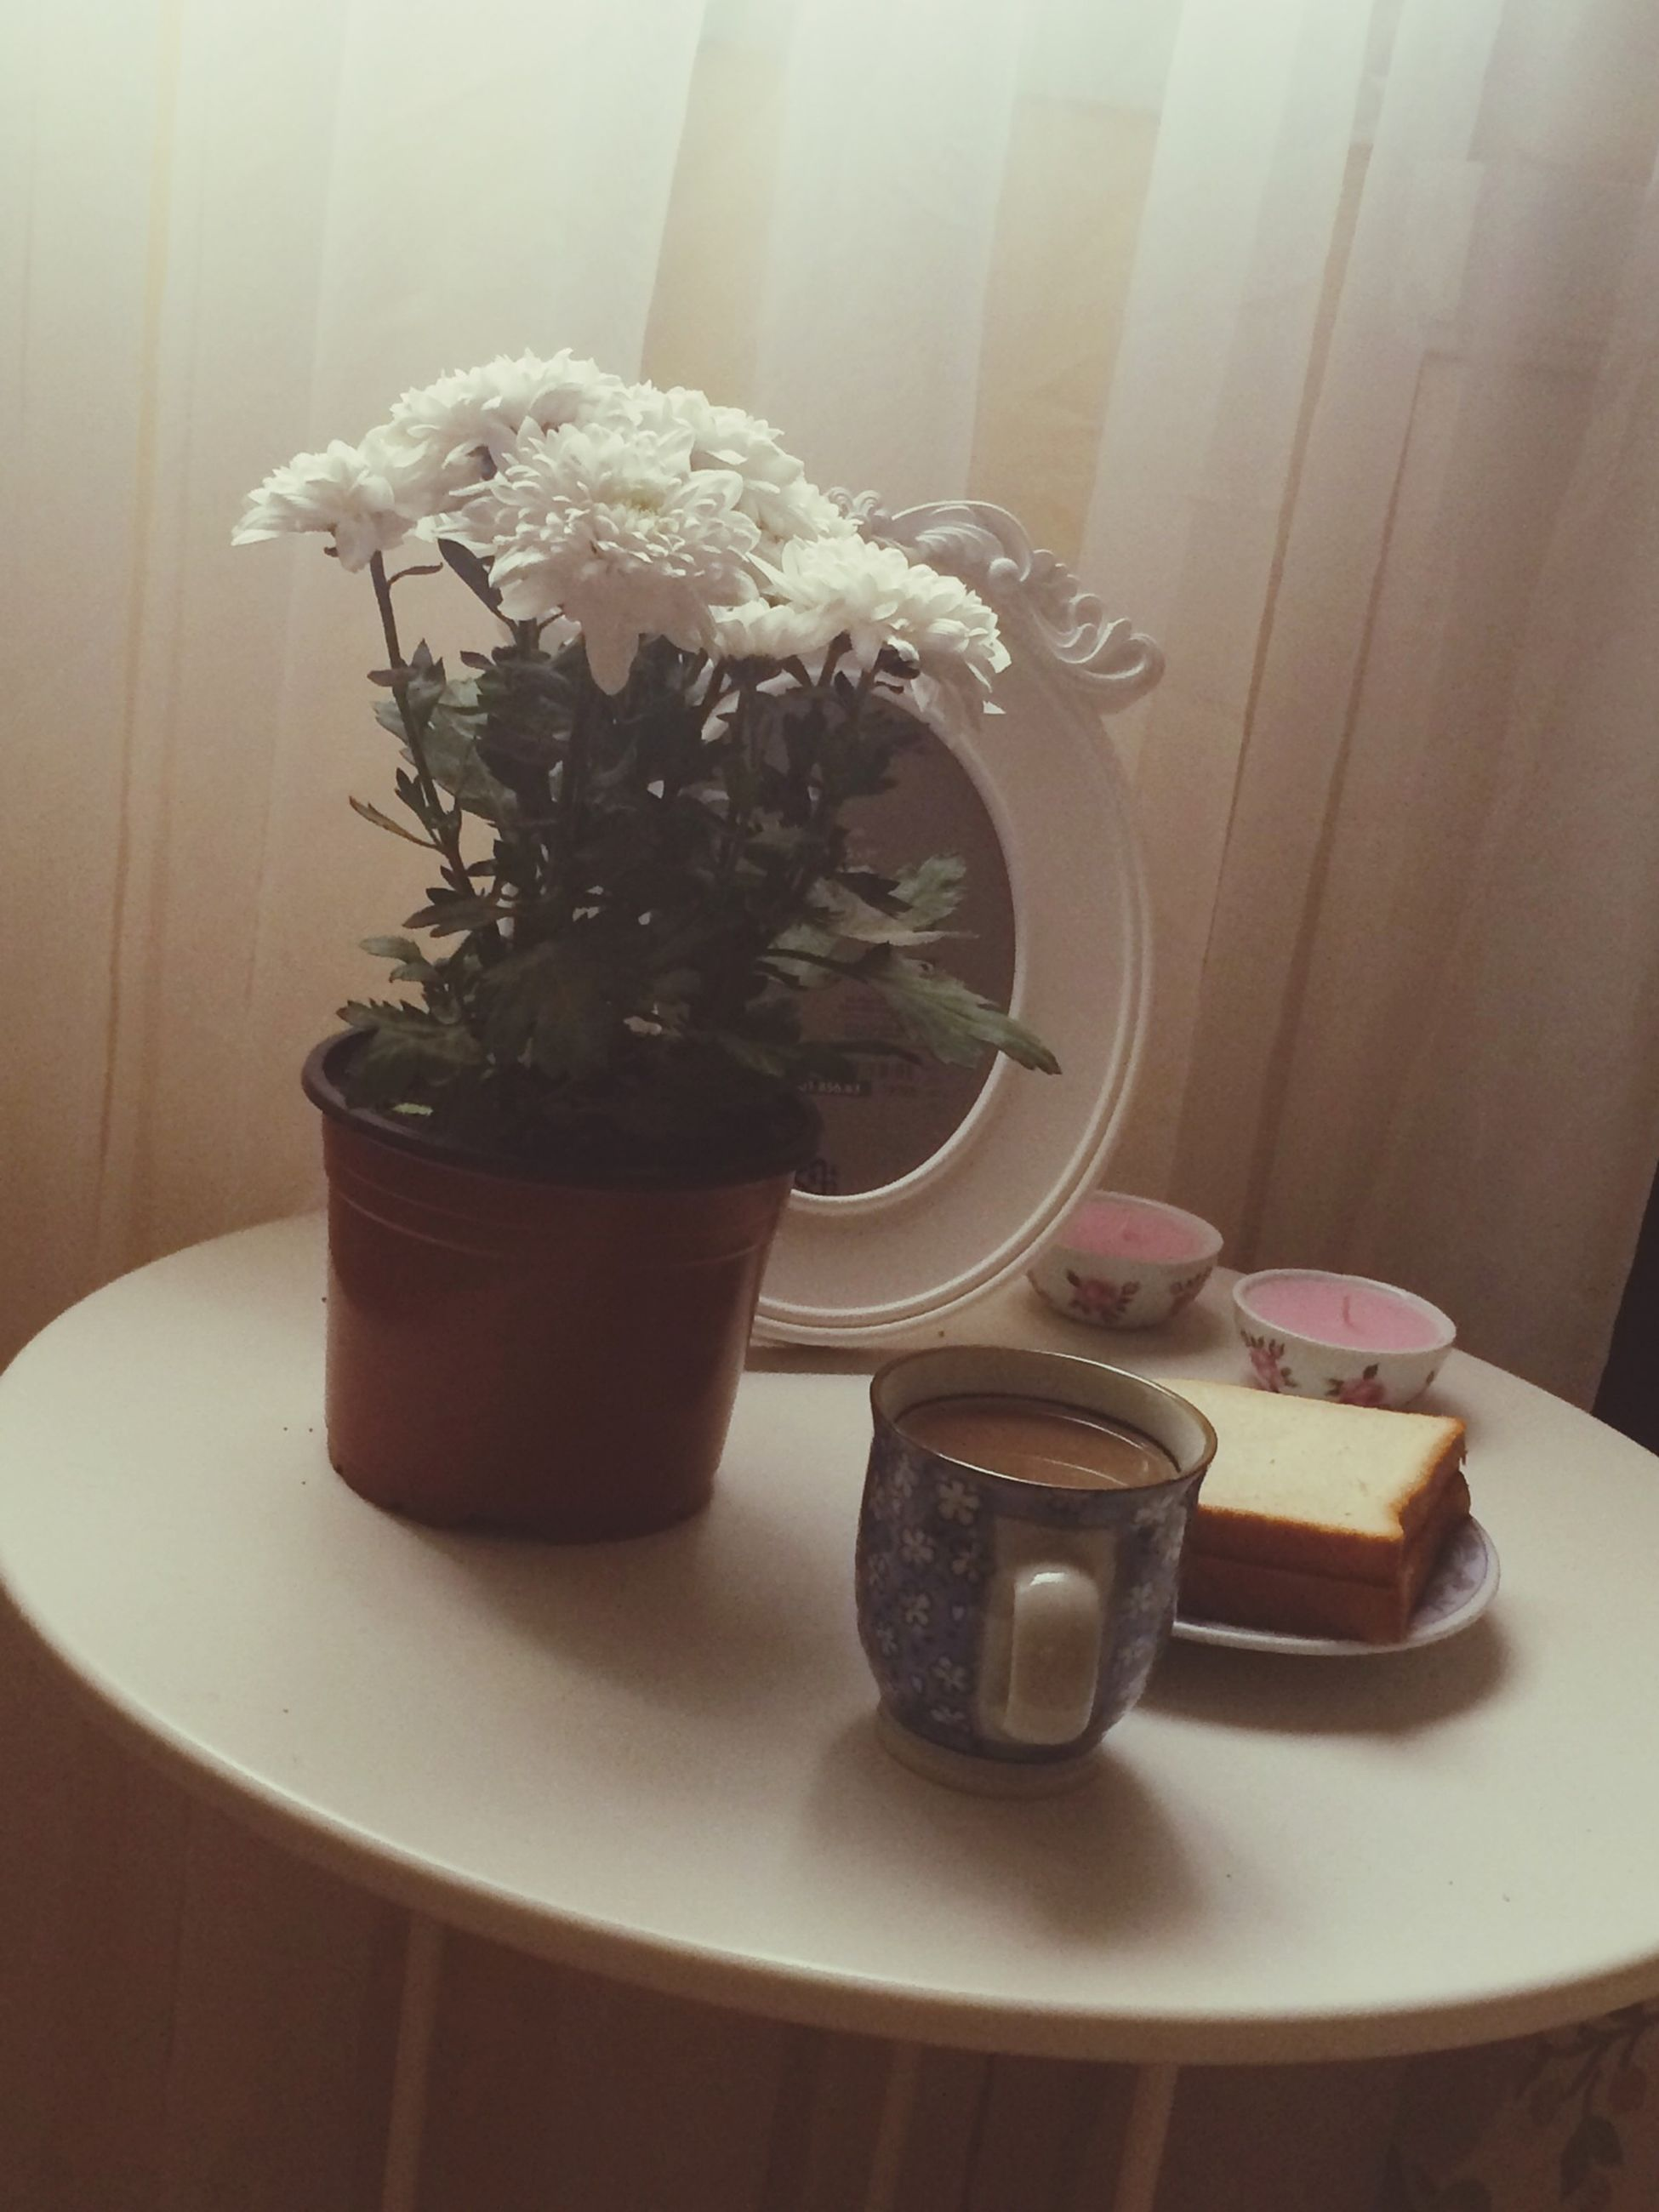 indoors, table, flower, vase, home interior, freshness, potted plant, plate, still life, food and drink, plant, no people, high angle view, window sill, coffee cup, window, decoration, domestic room, glass - material, chair